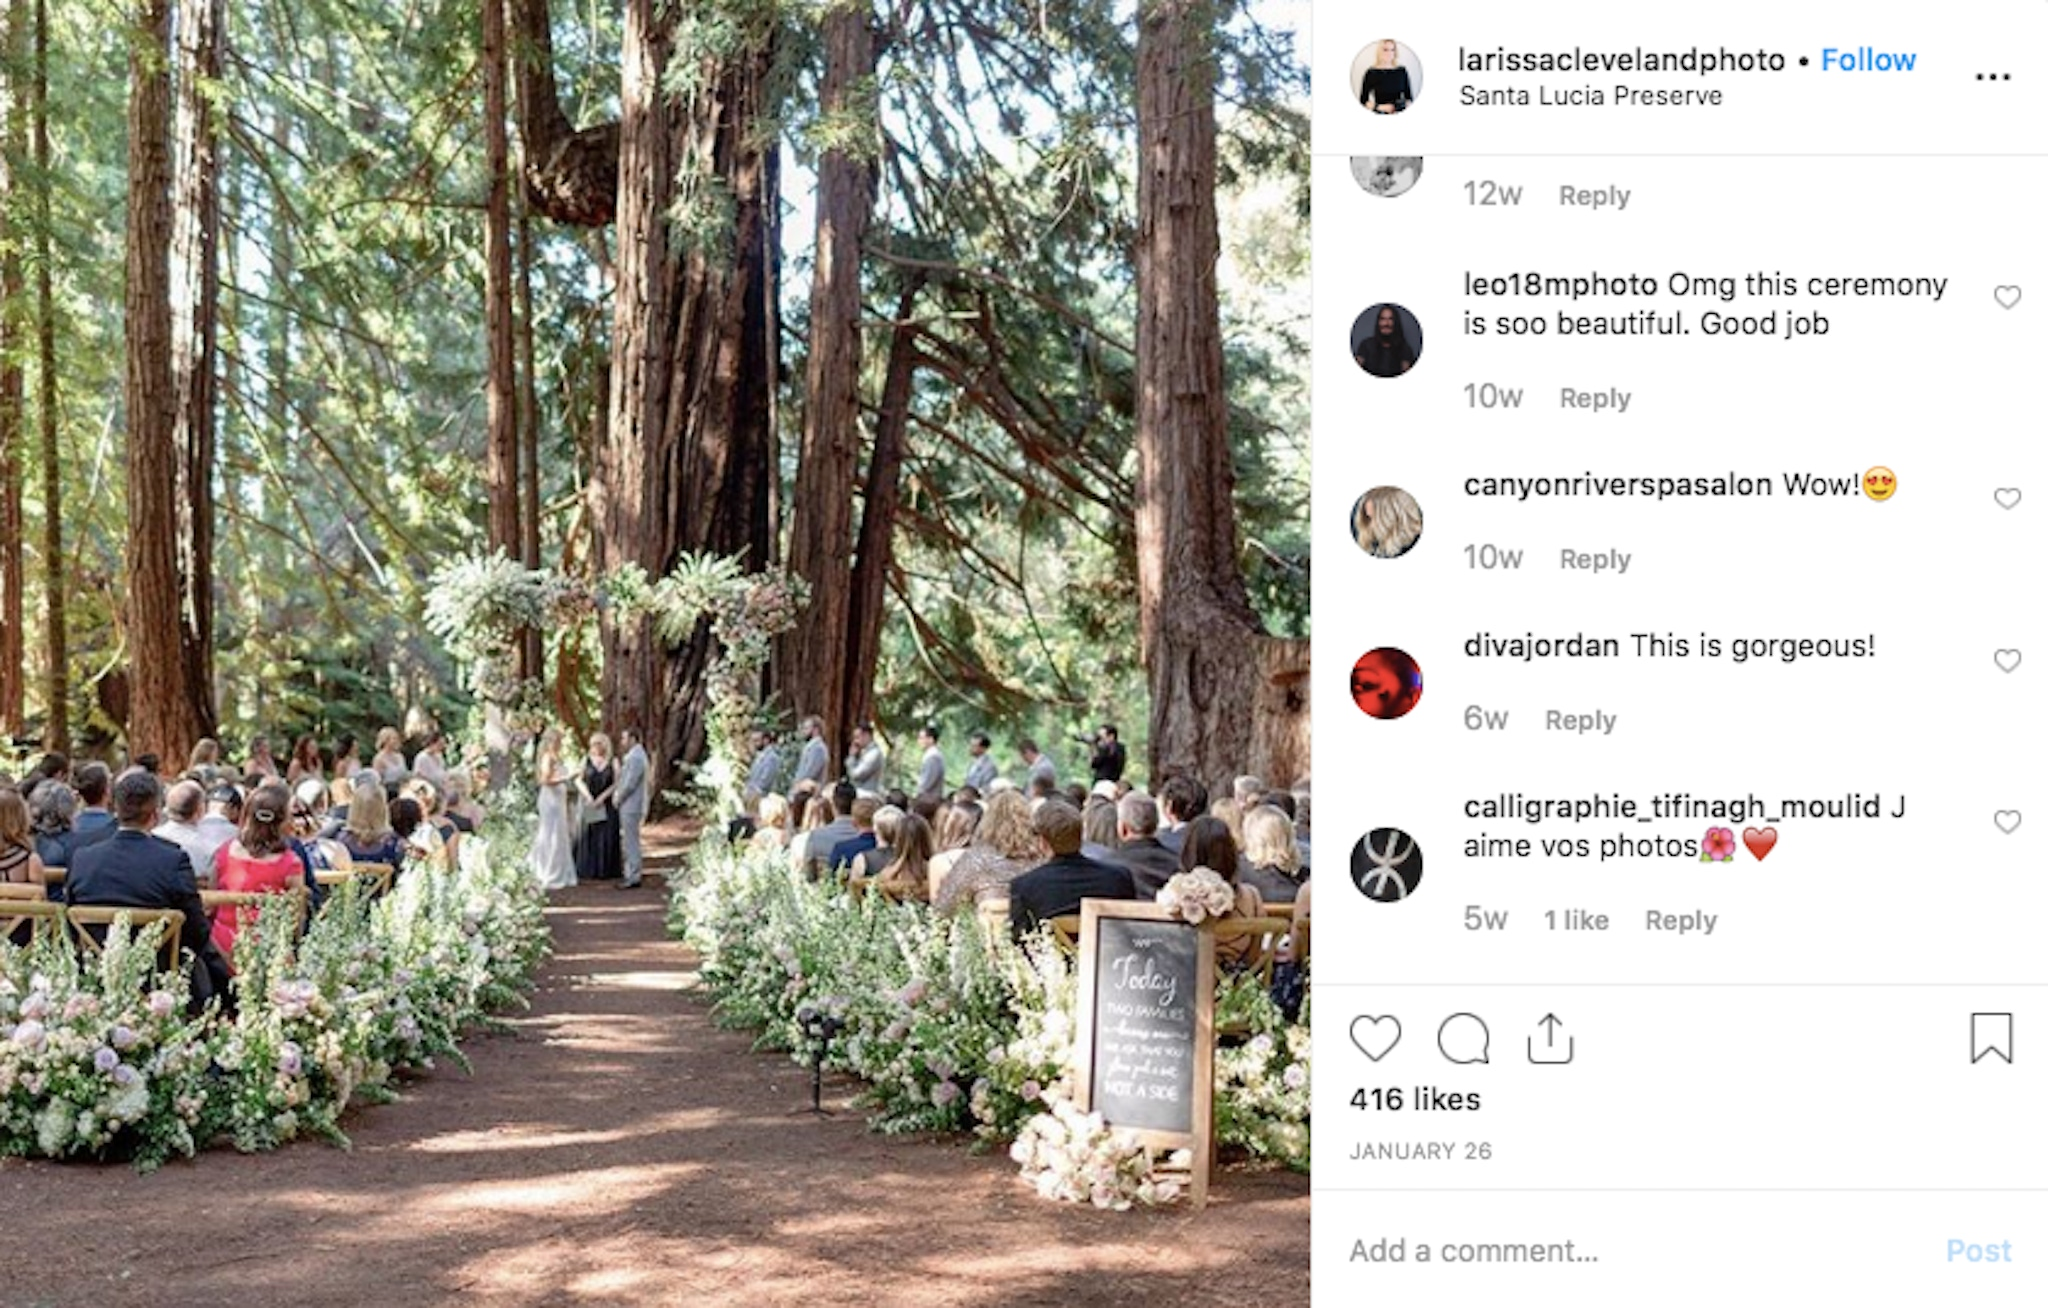 outdoor wedding with big trees and greenery